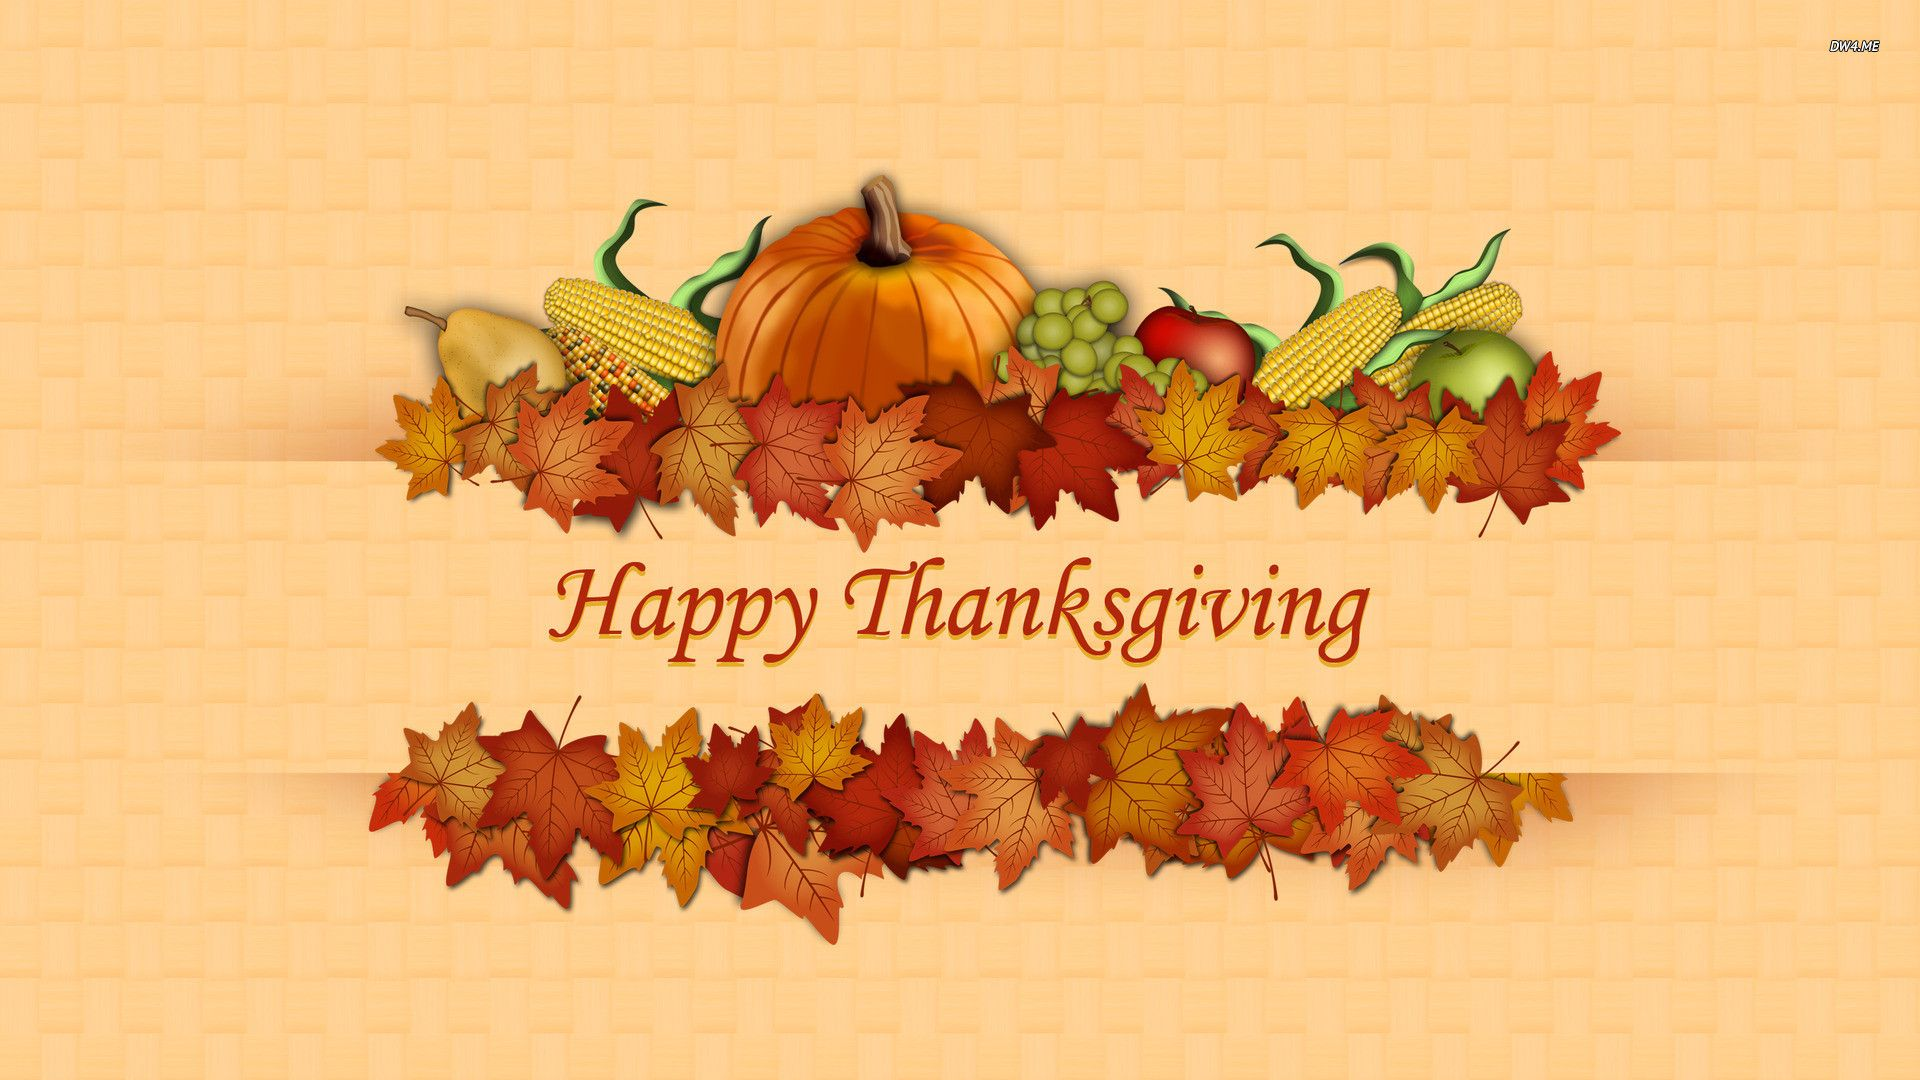 1920x1080 Free Thanksgiving Wallpapers For Ipad Ipad 2 Giving Thanks Epic Car Happy Thanksgiving Wallpaper Thanksgiving Pictures Free Thanksgiving Pictures